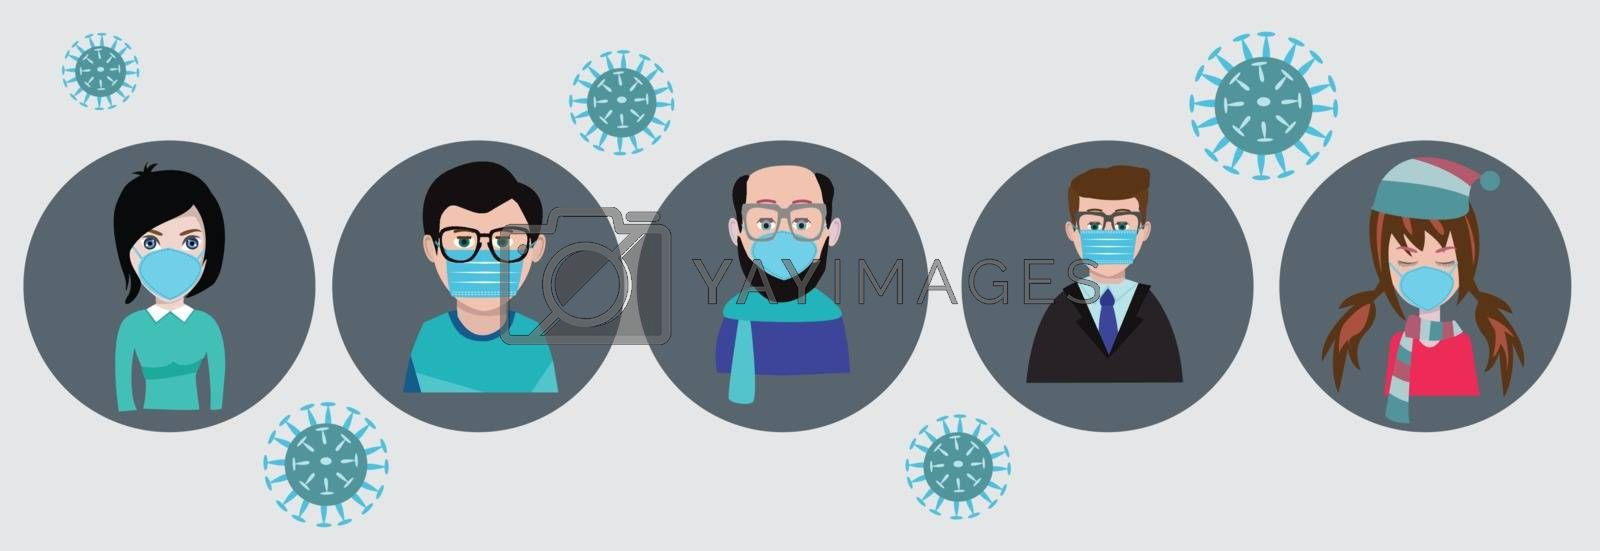 People wearing face mask, surgical mask to prevent disease, flu, gas mask. Coronavirus. Vector illustration in a flat style.